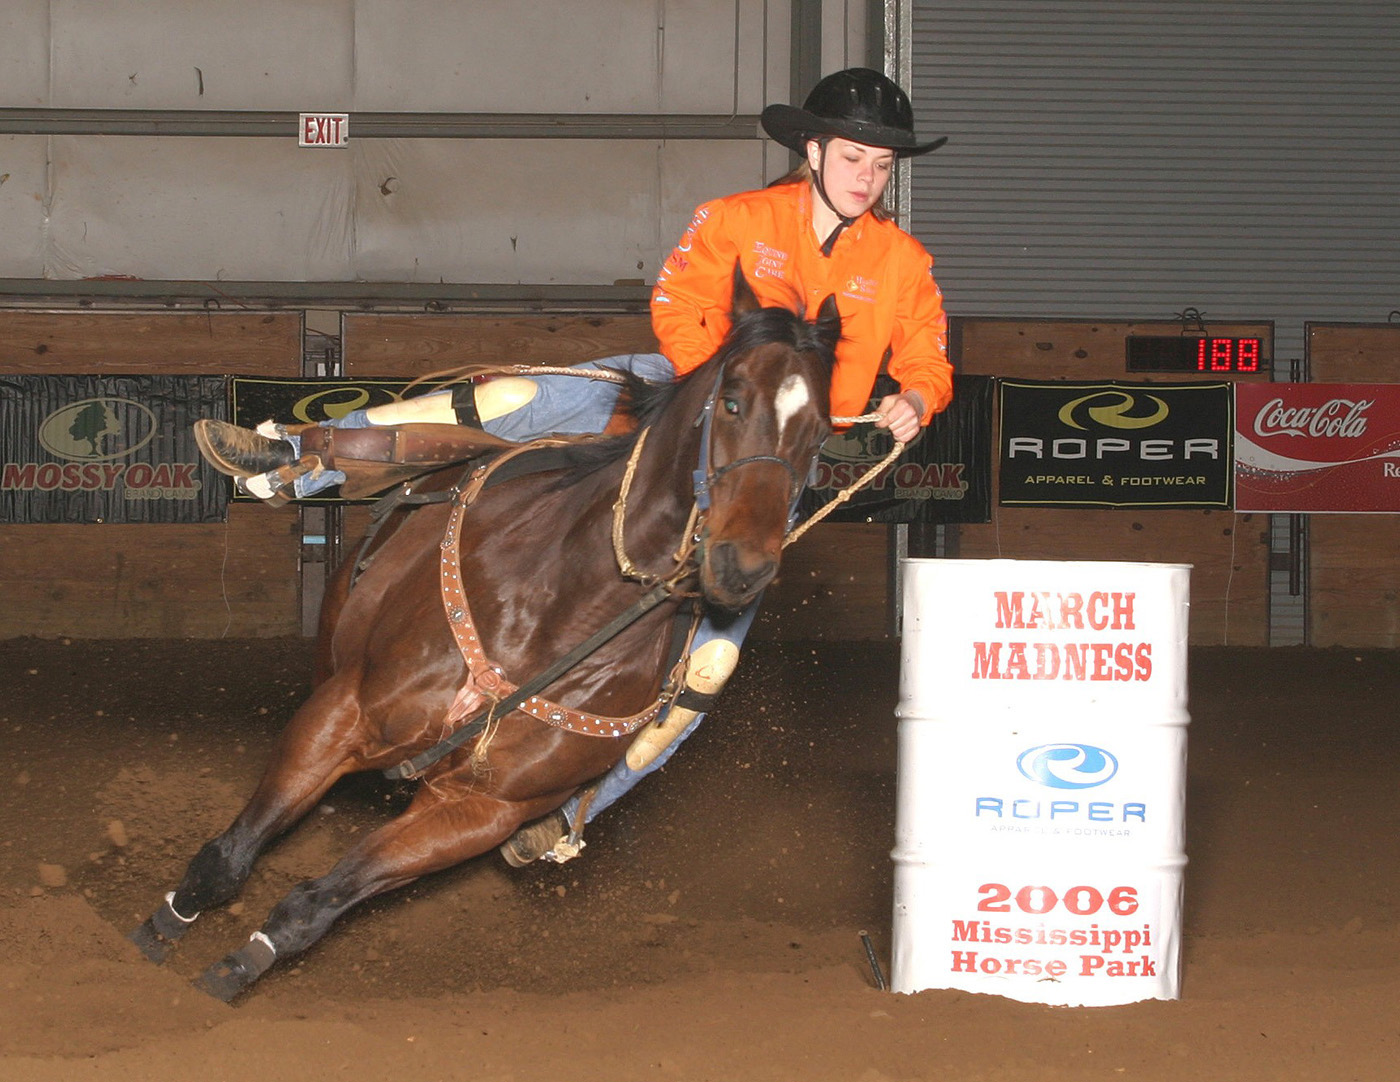 Sex discrimanation in barrel racing